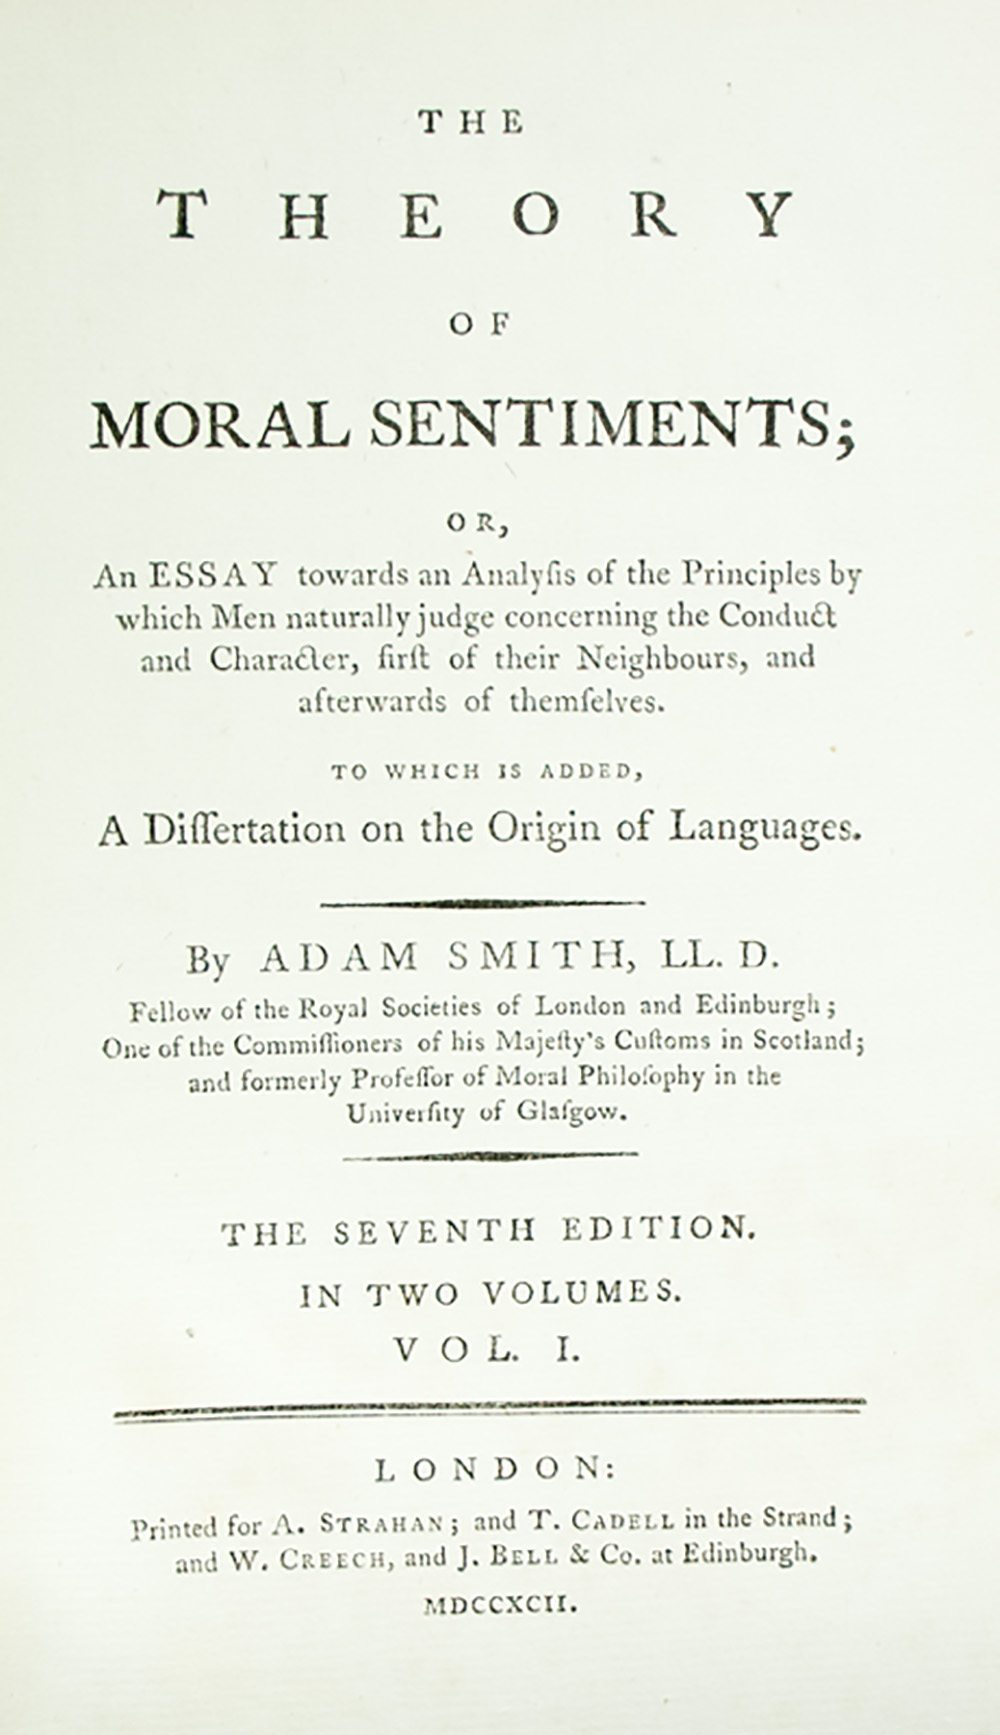 adam smith wealth of nations and the theory of moral sentiments the theory of moral sentiments and an inquiry into the nature and causes of the wealth